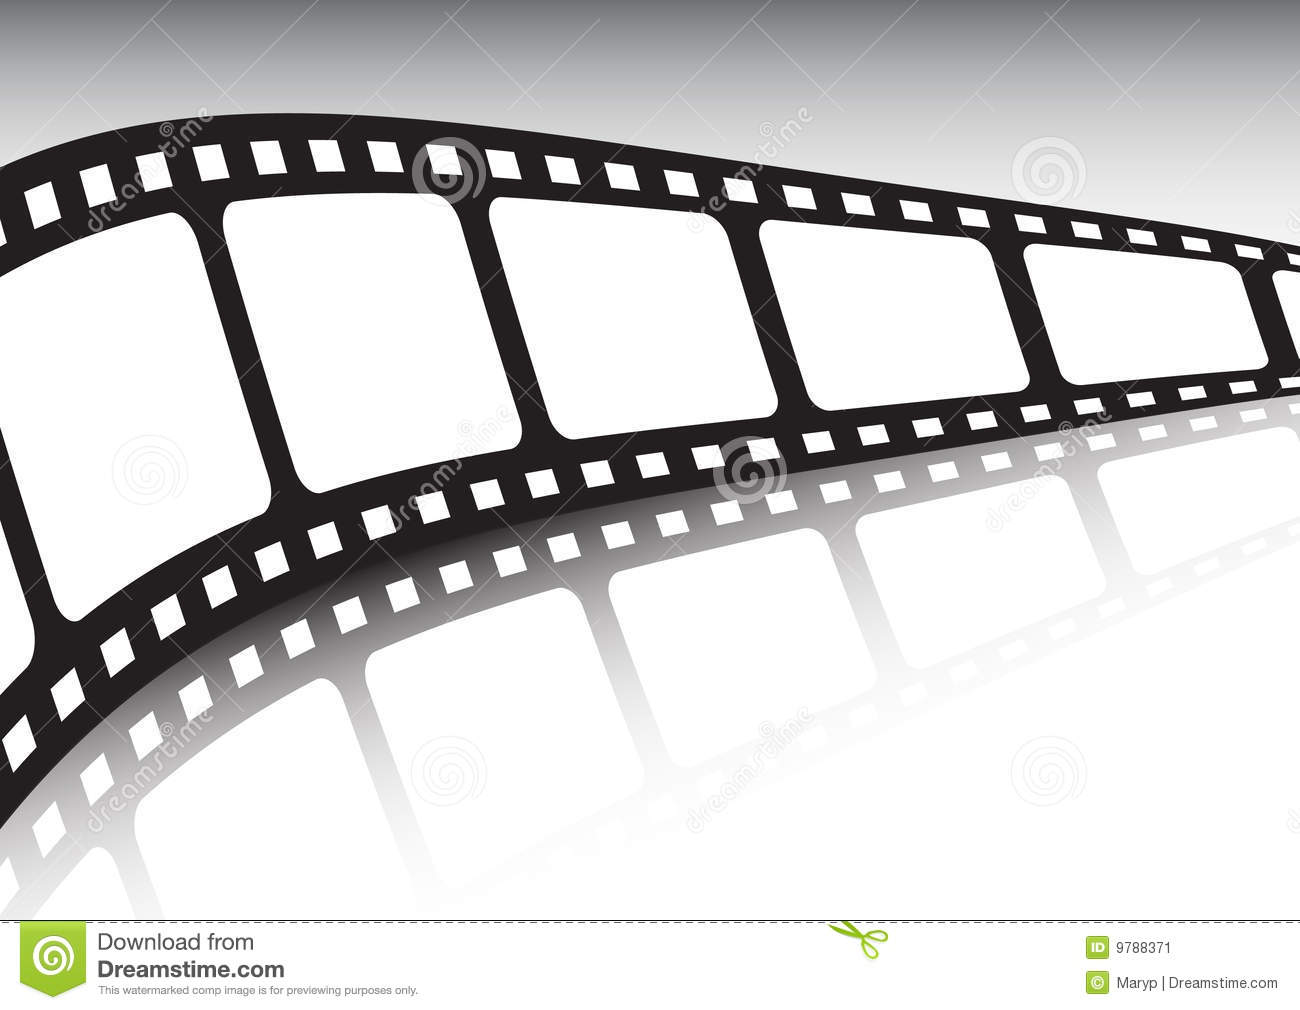 Endless Film Strip Vector Illustration Stock Image - Image: 9788371